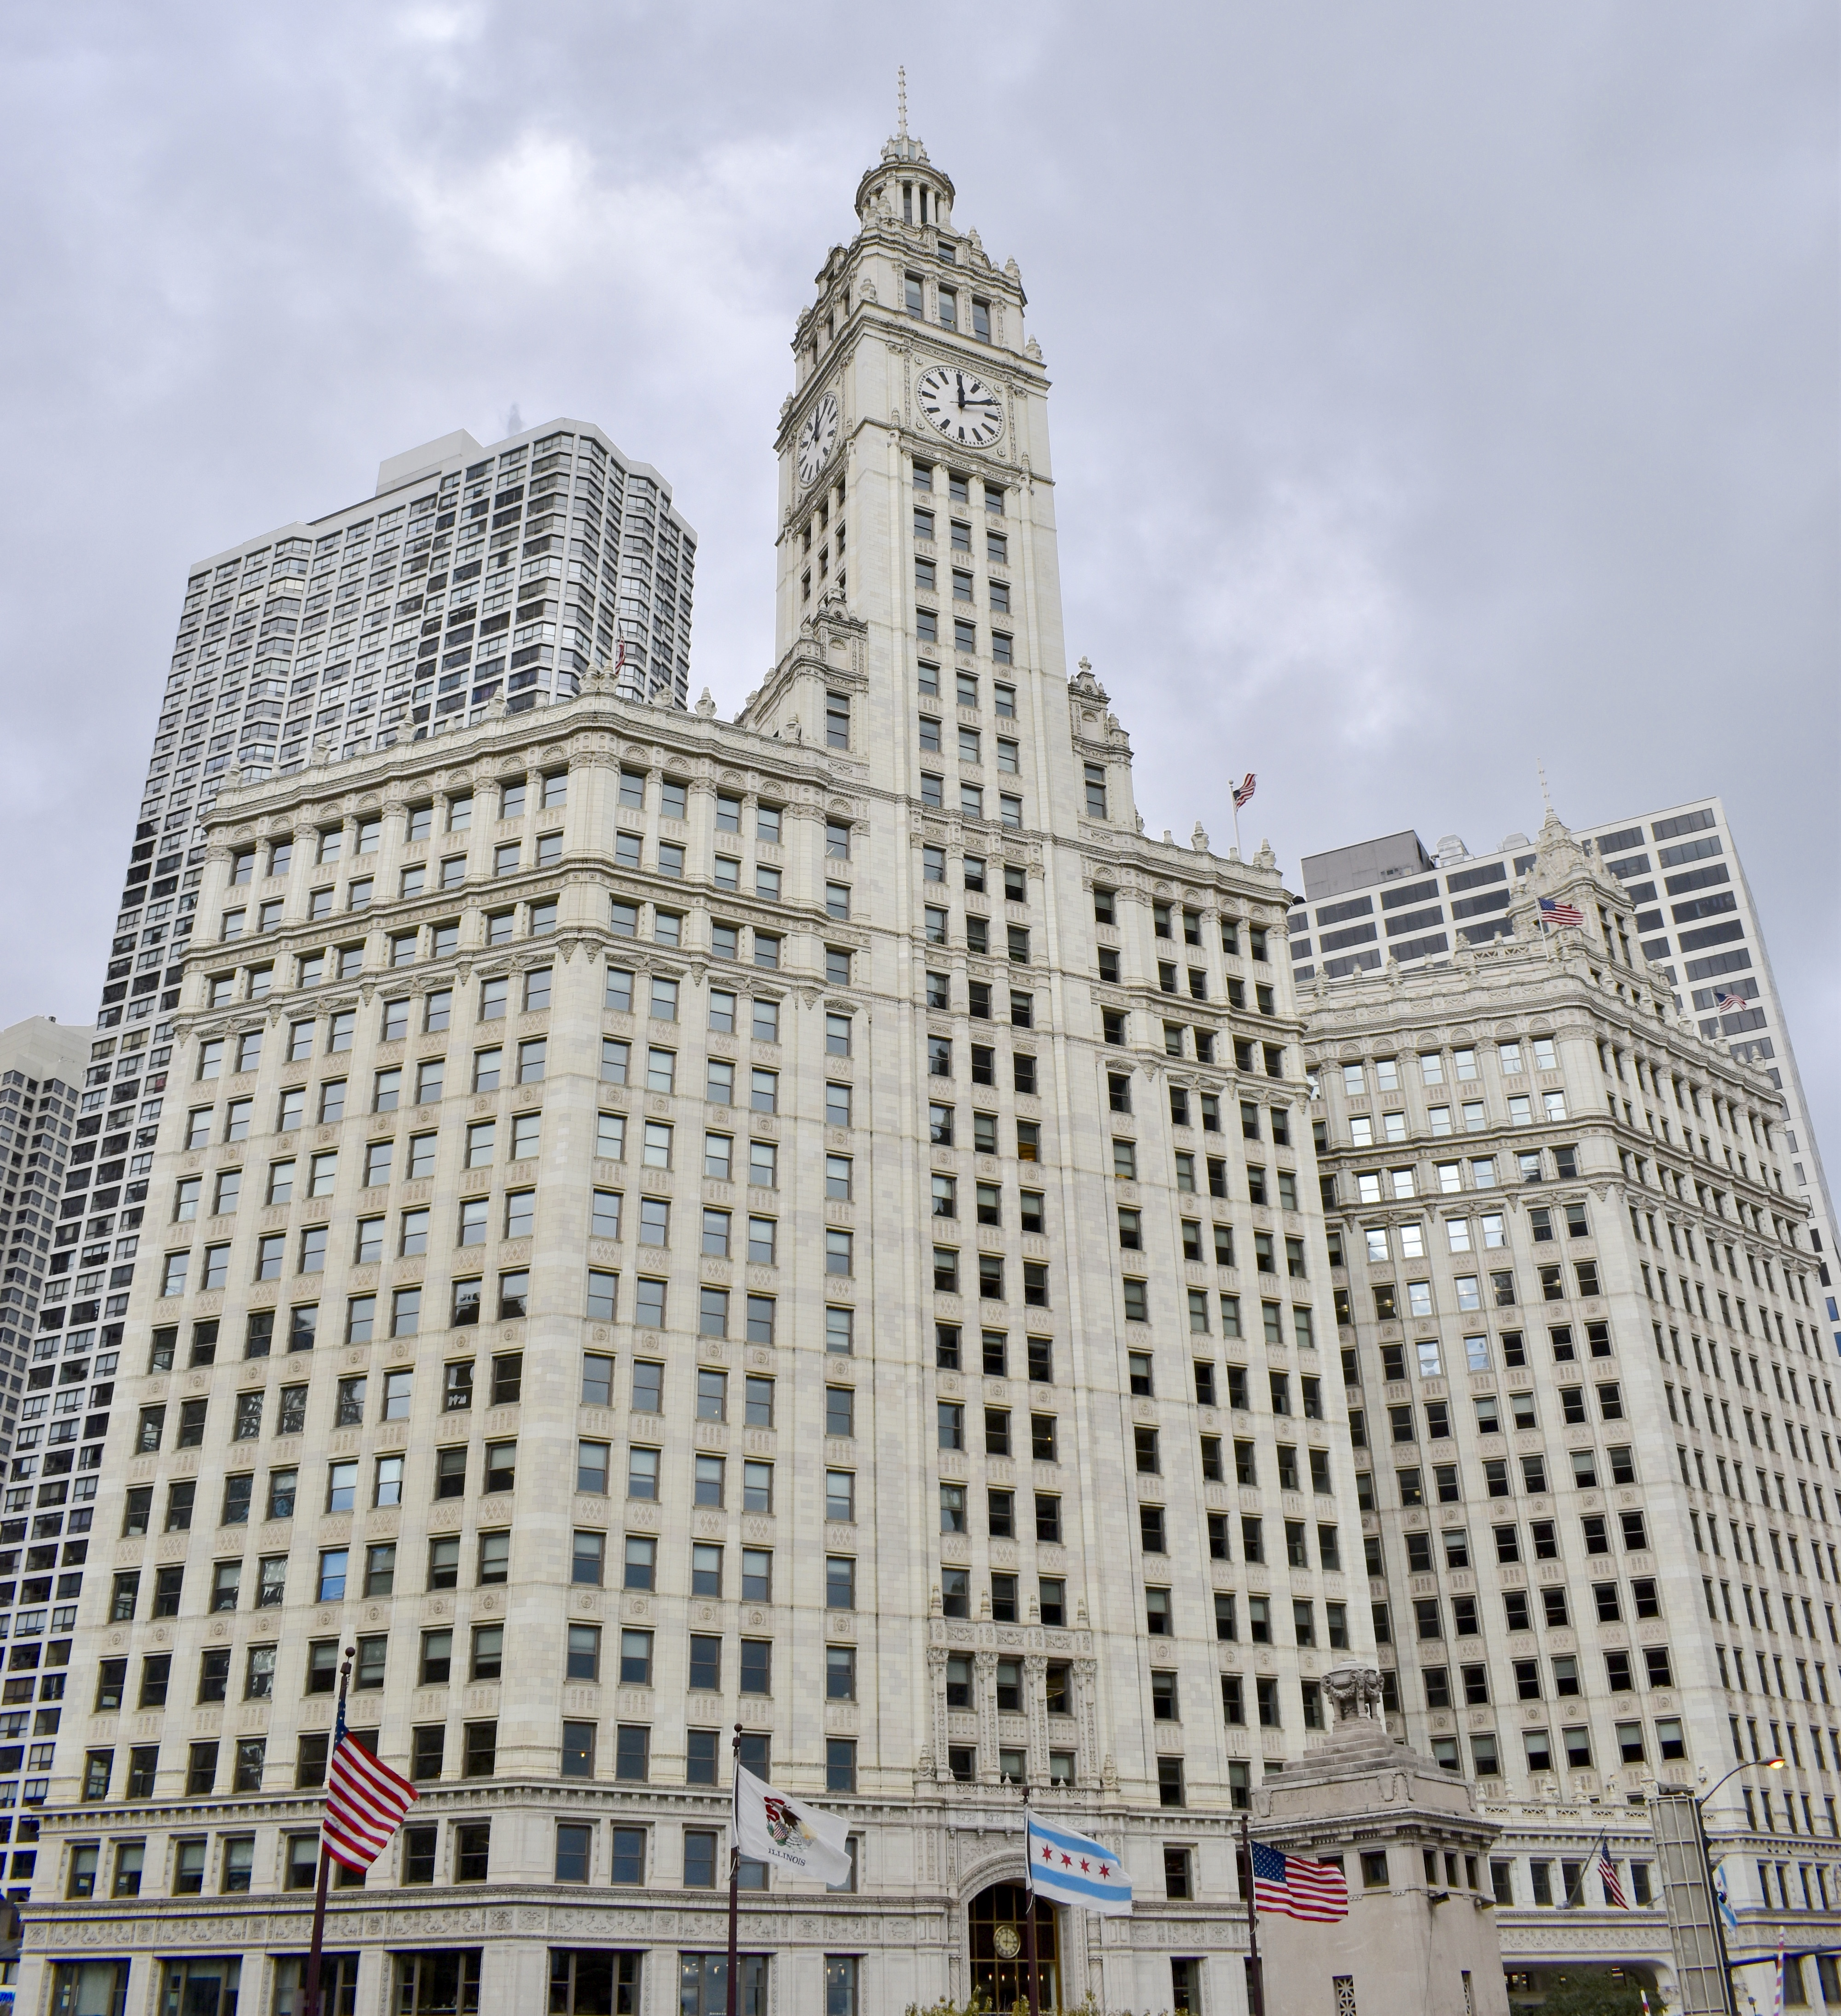 Architectural Tour of Chicago| The Wrigley Building | Cathedrals and Cafes Blog